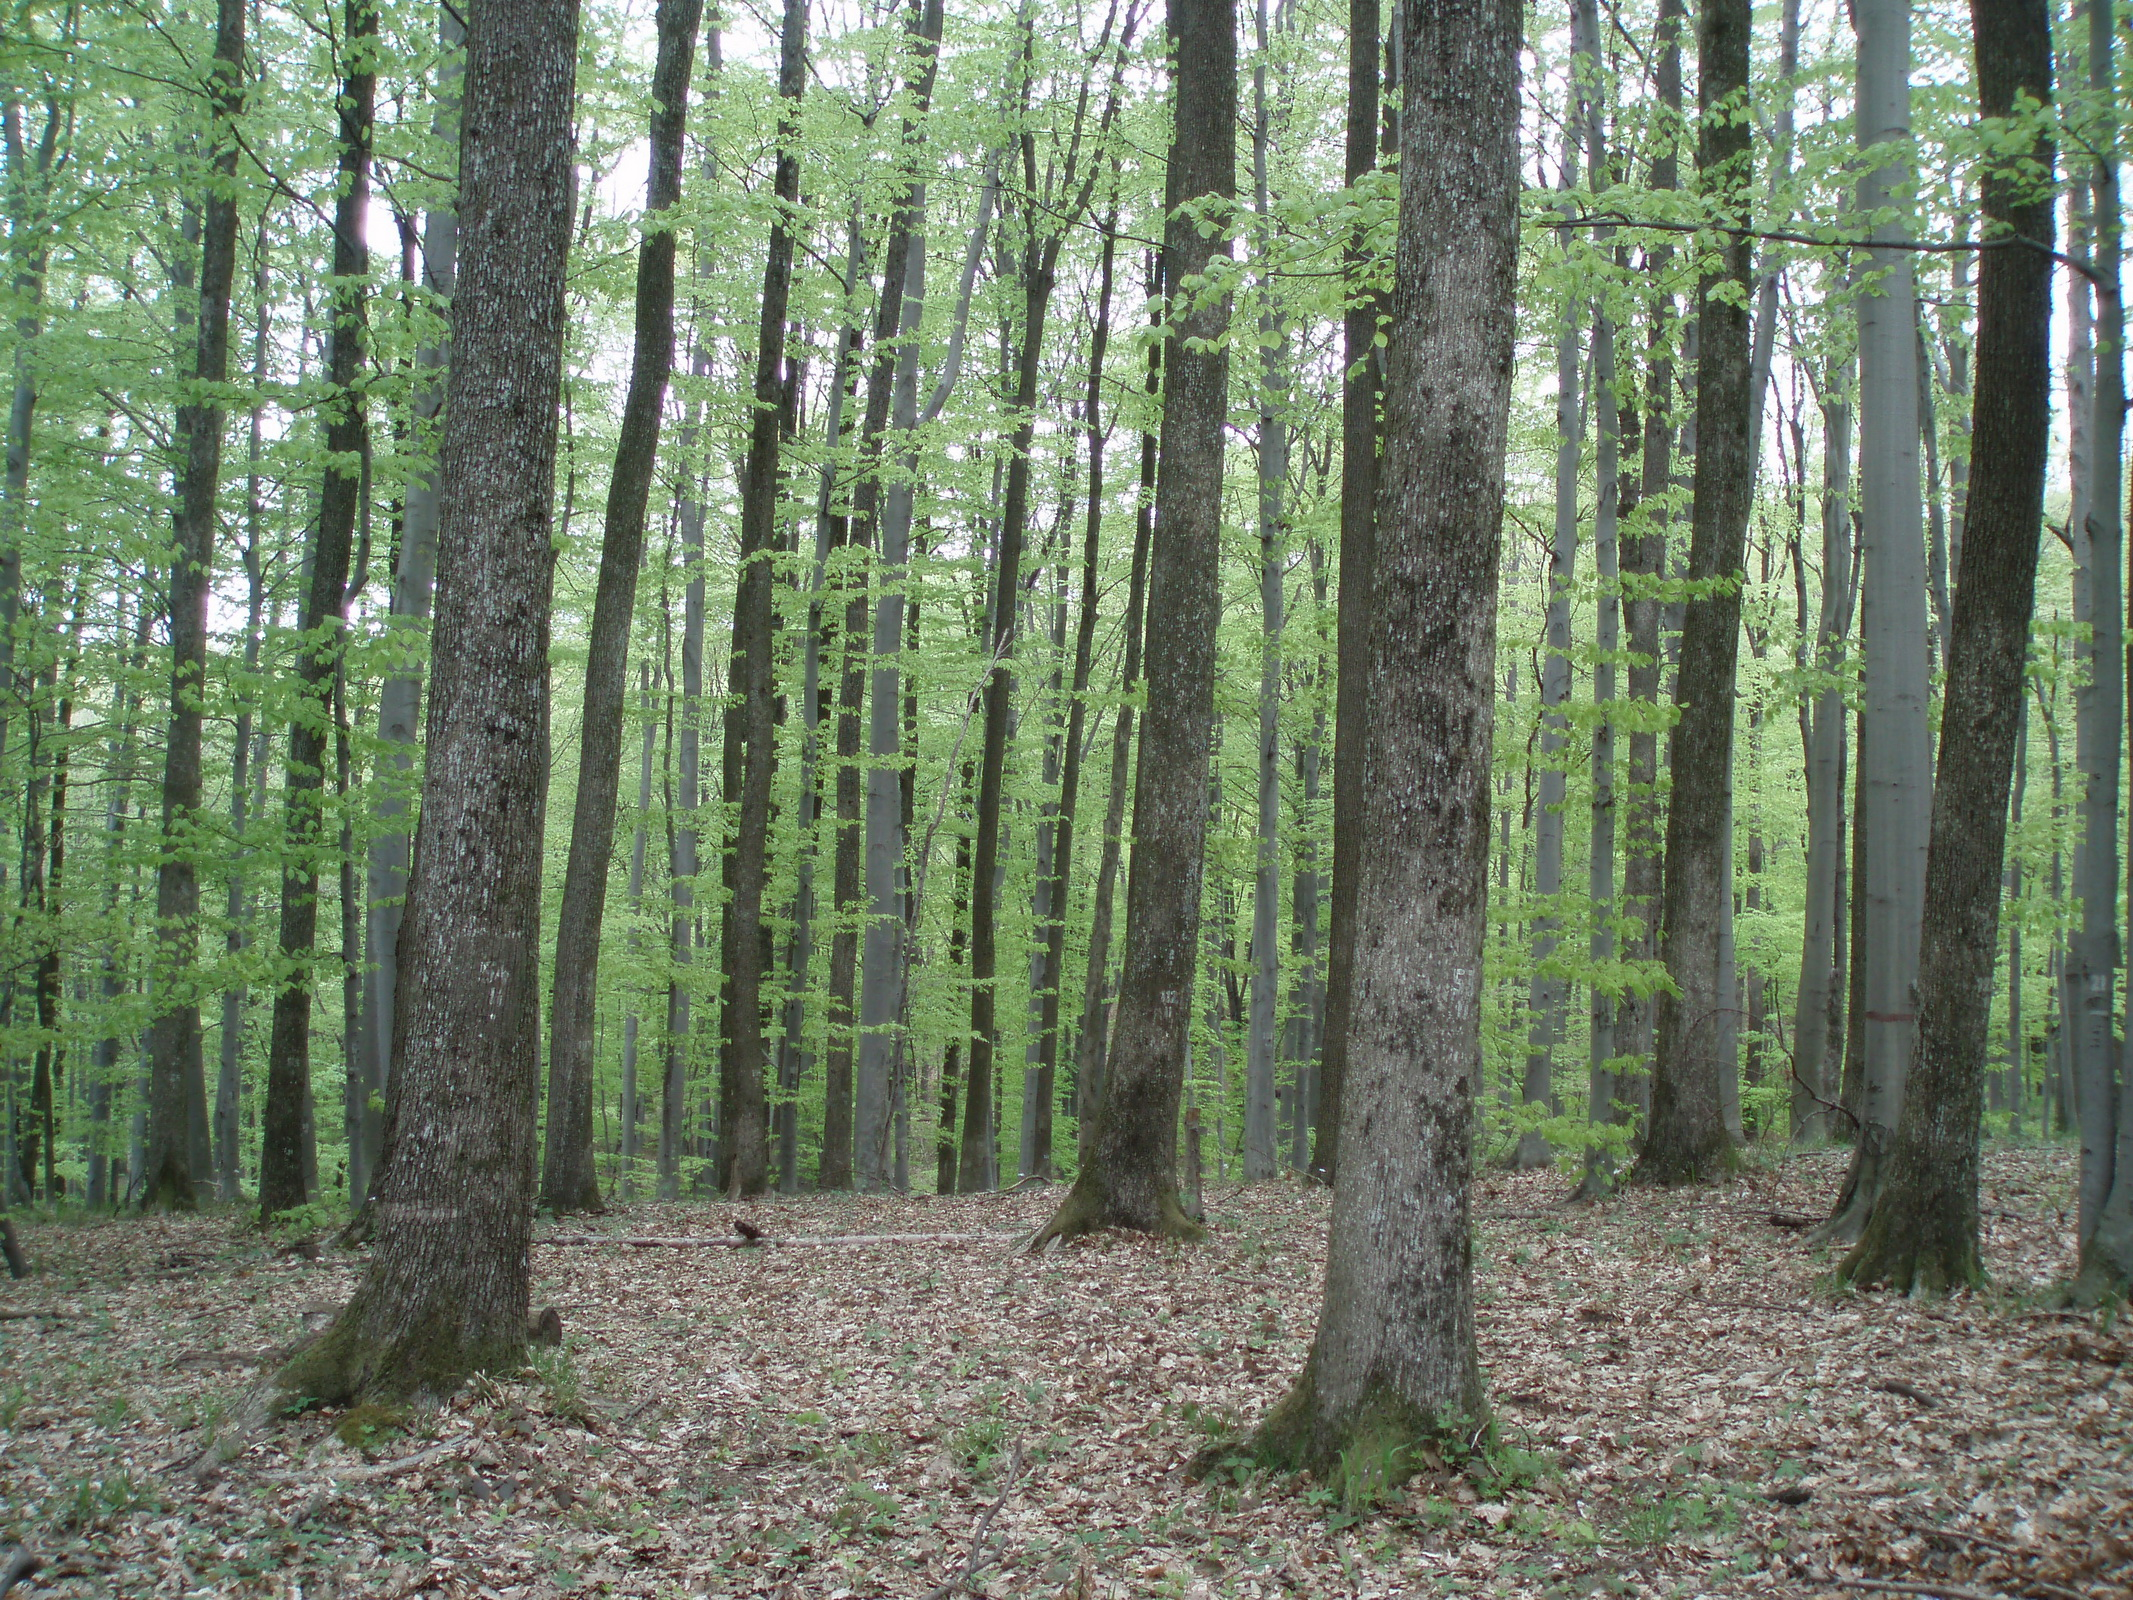 Kalnik forest, 40-years old experimental plot in the Sessile oak-Beech stand, structured using the original thinning method (C) Anic